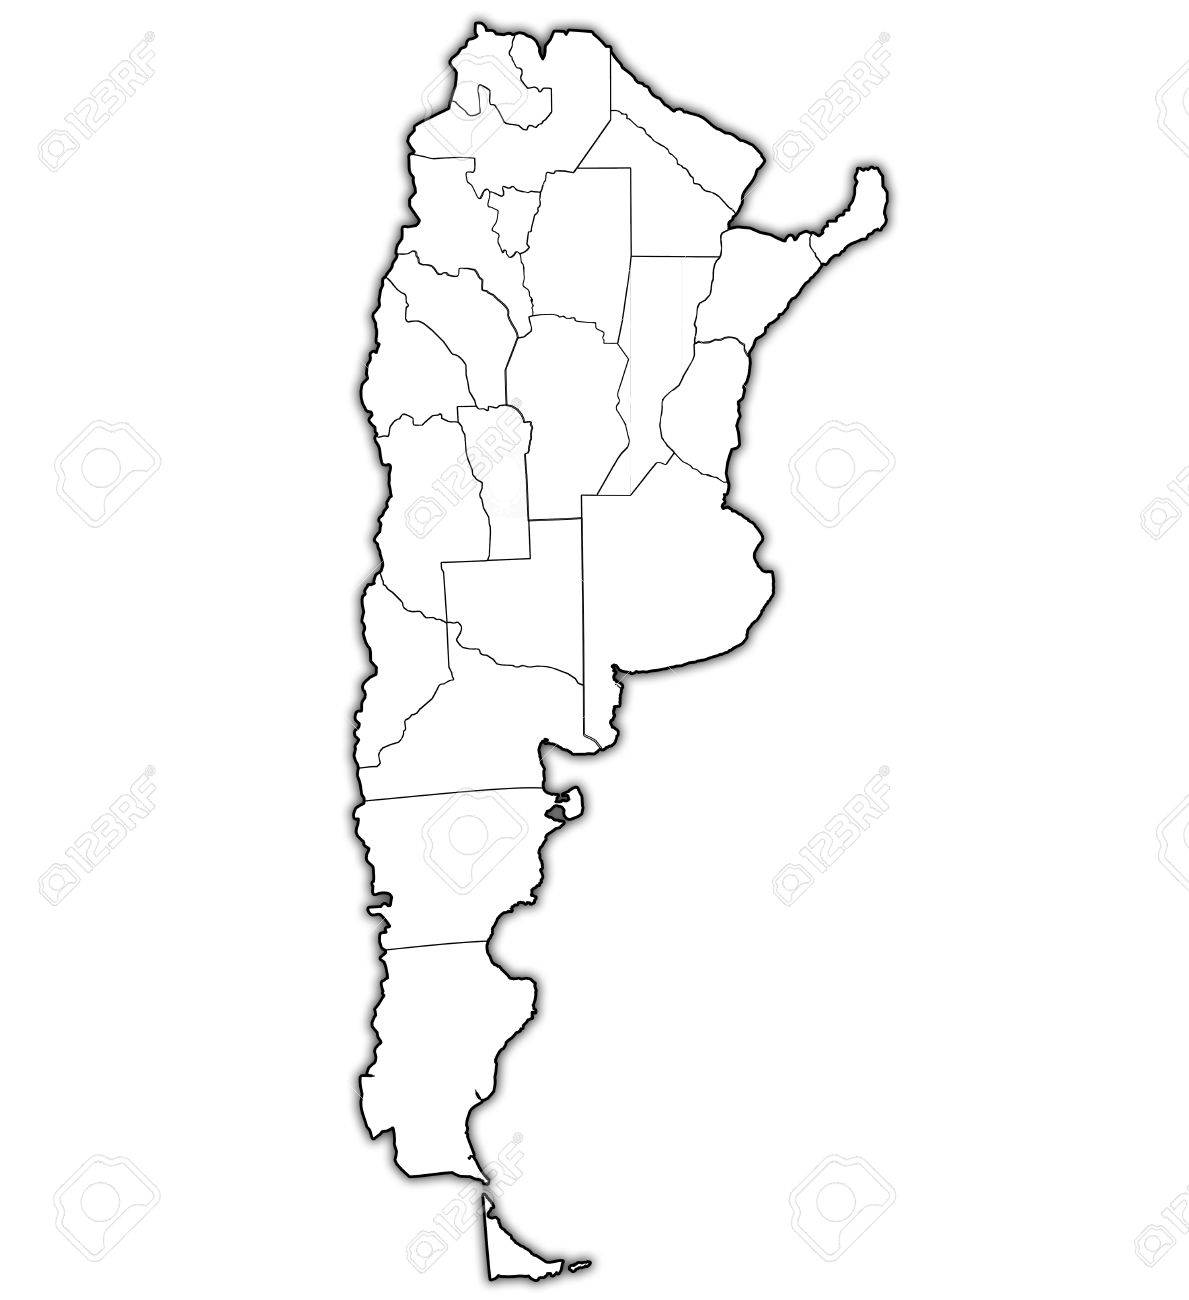 Regions Of Argentina With Borders On Map Of Administrative Divisions